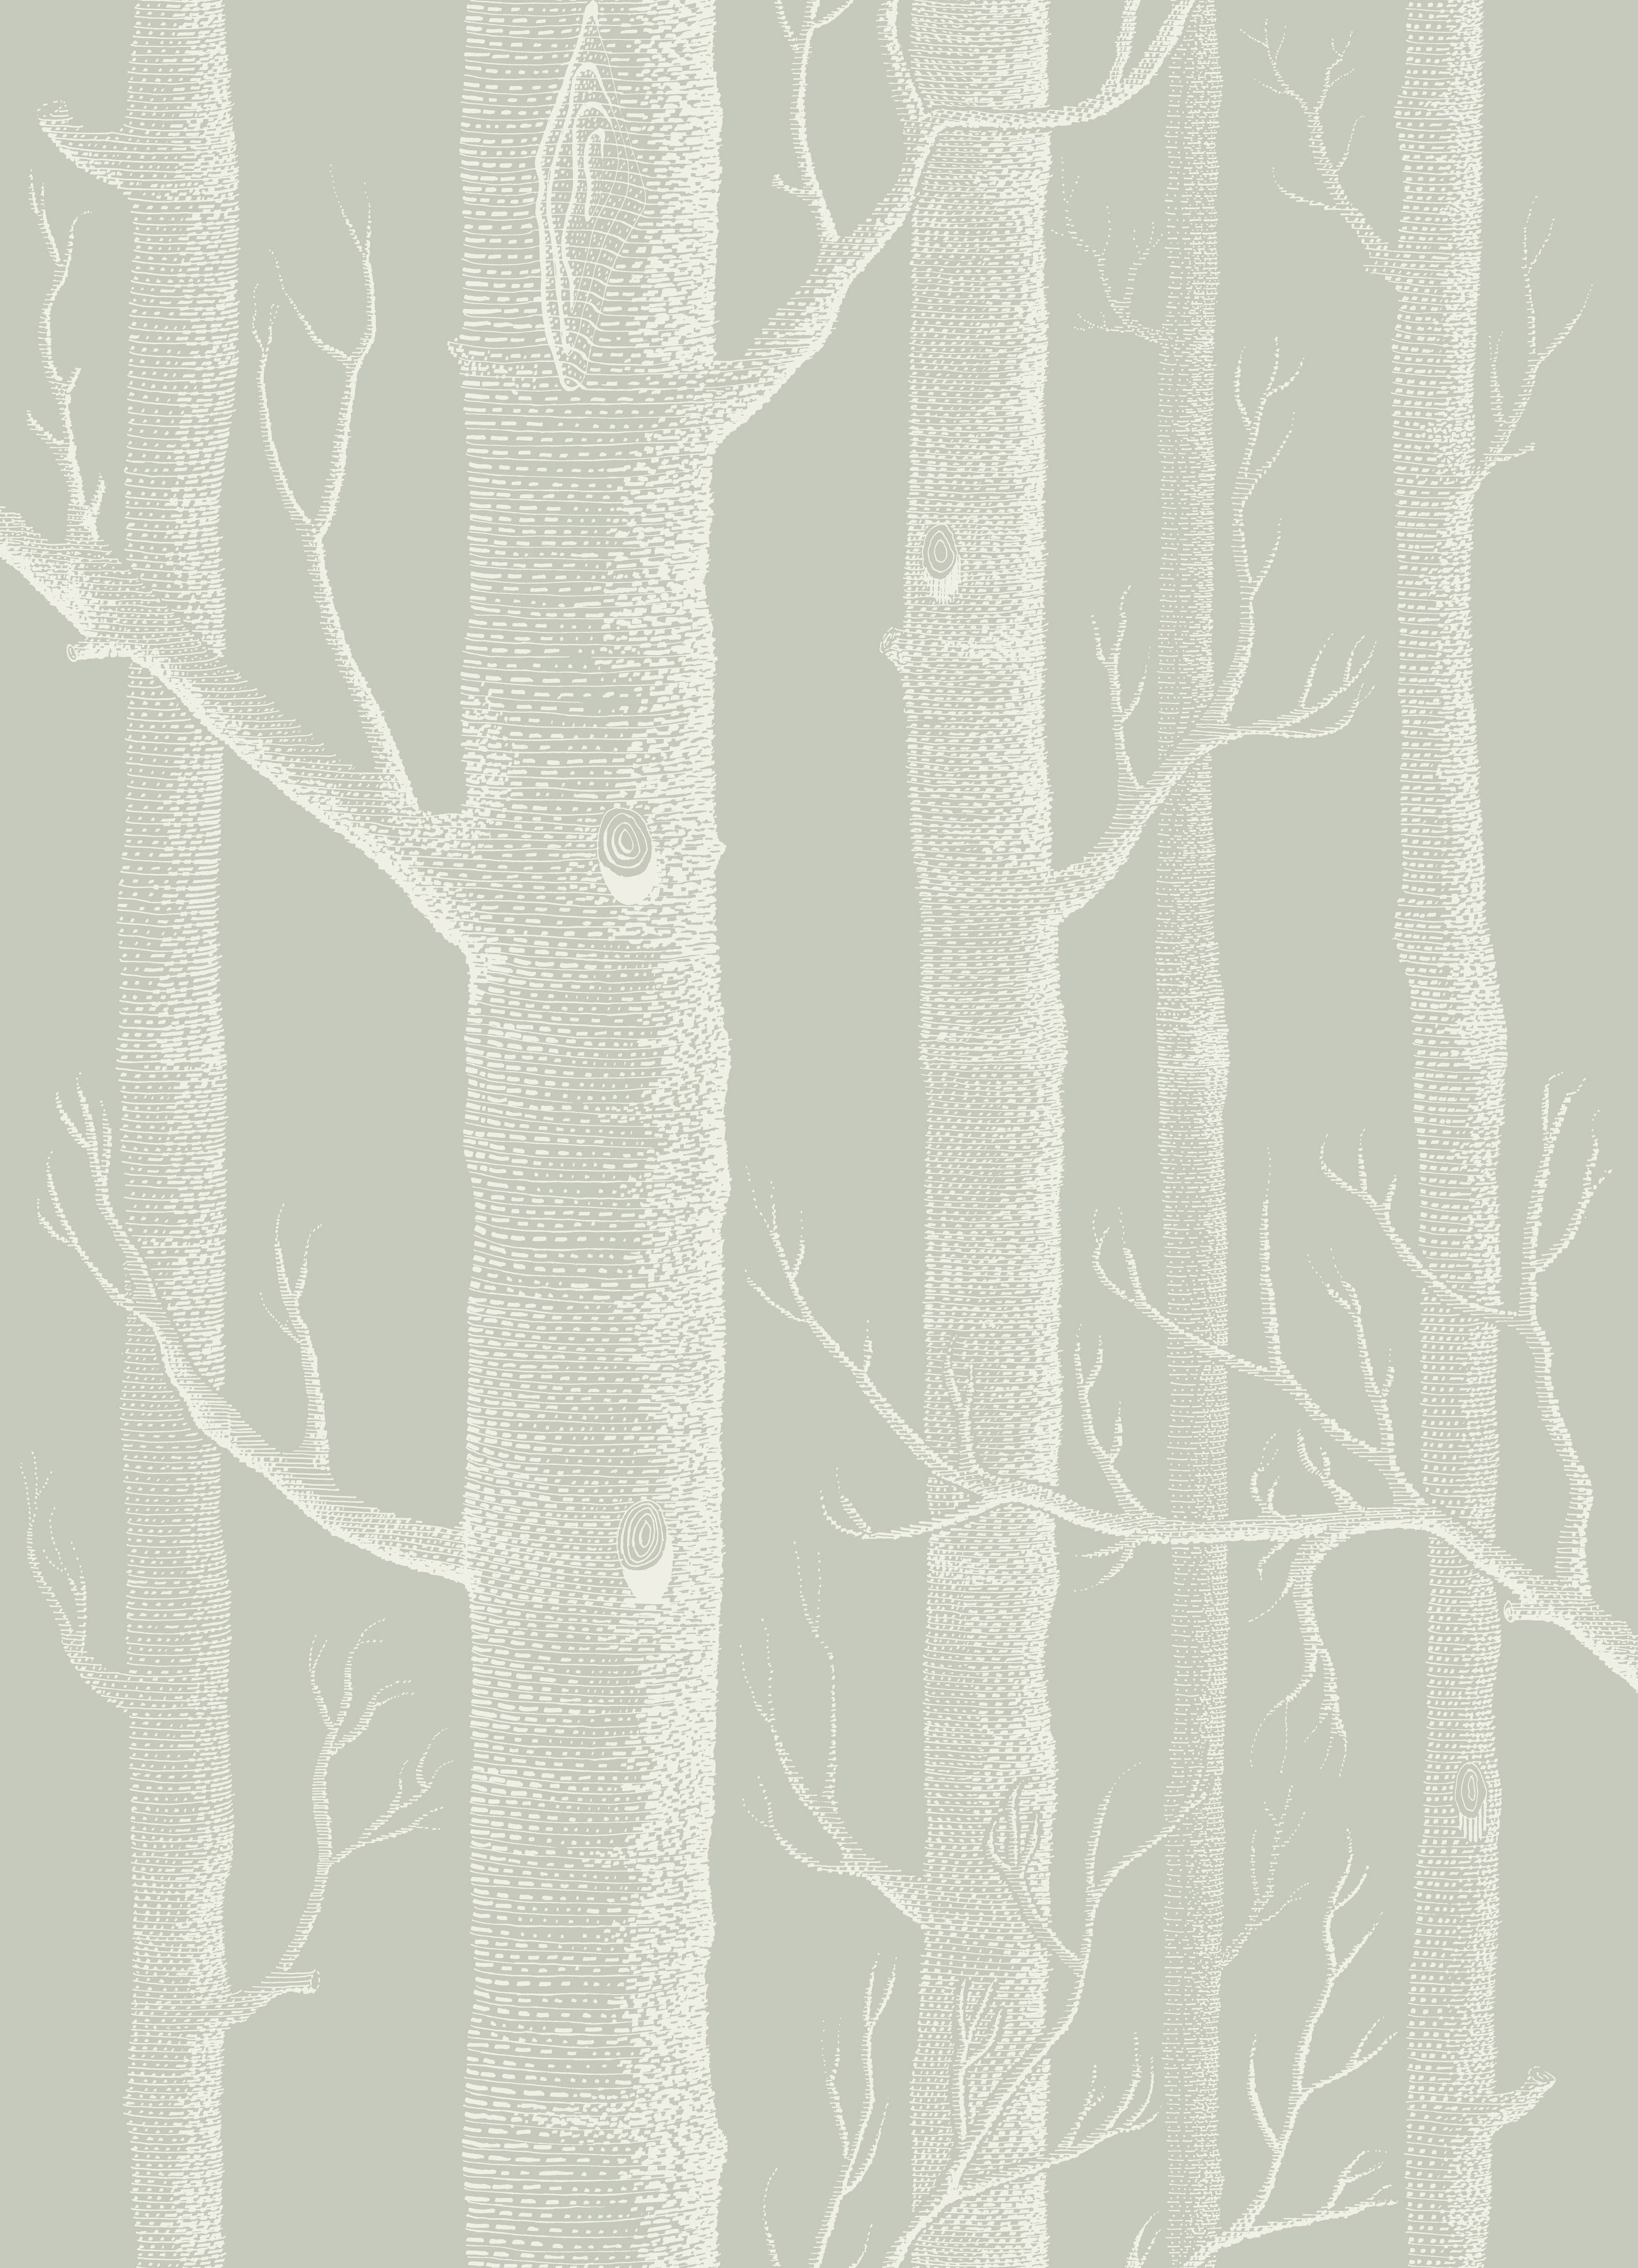 Cole And Son Woods woods icons 112/3013 wallpapercole & son